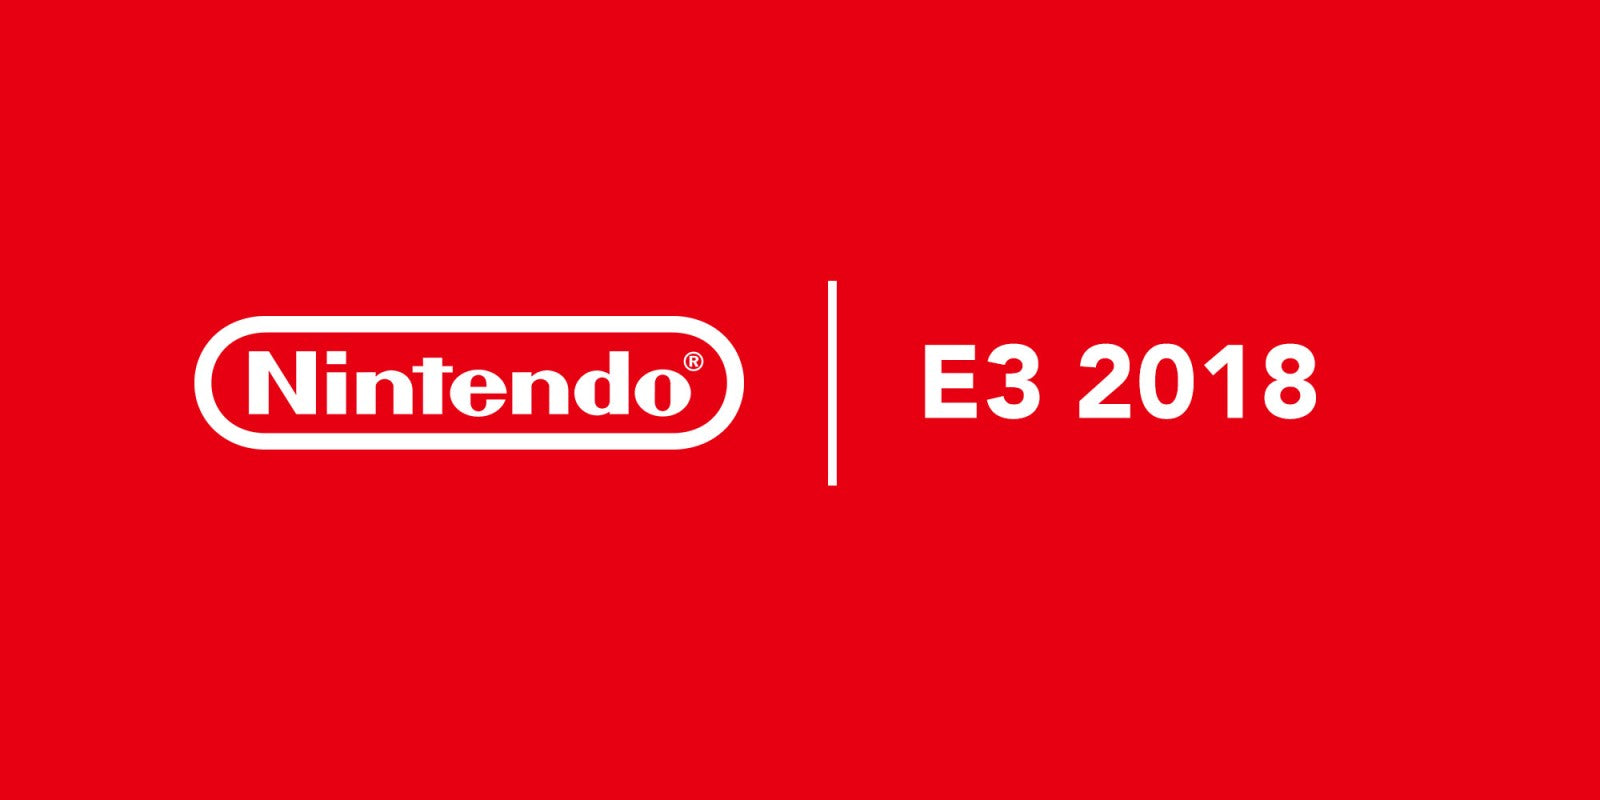 A Week on From 2018's E3: The Most Exciting Announcements From Nintendo